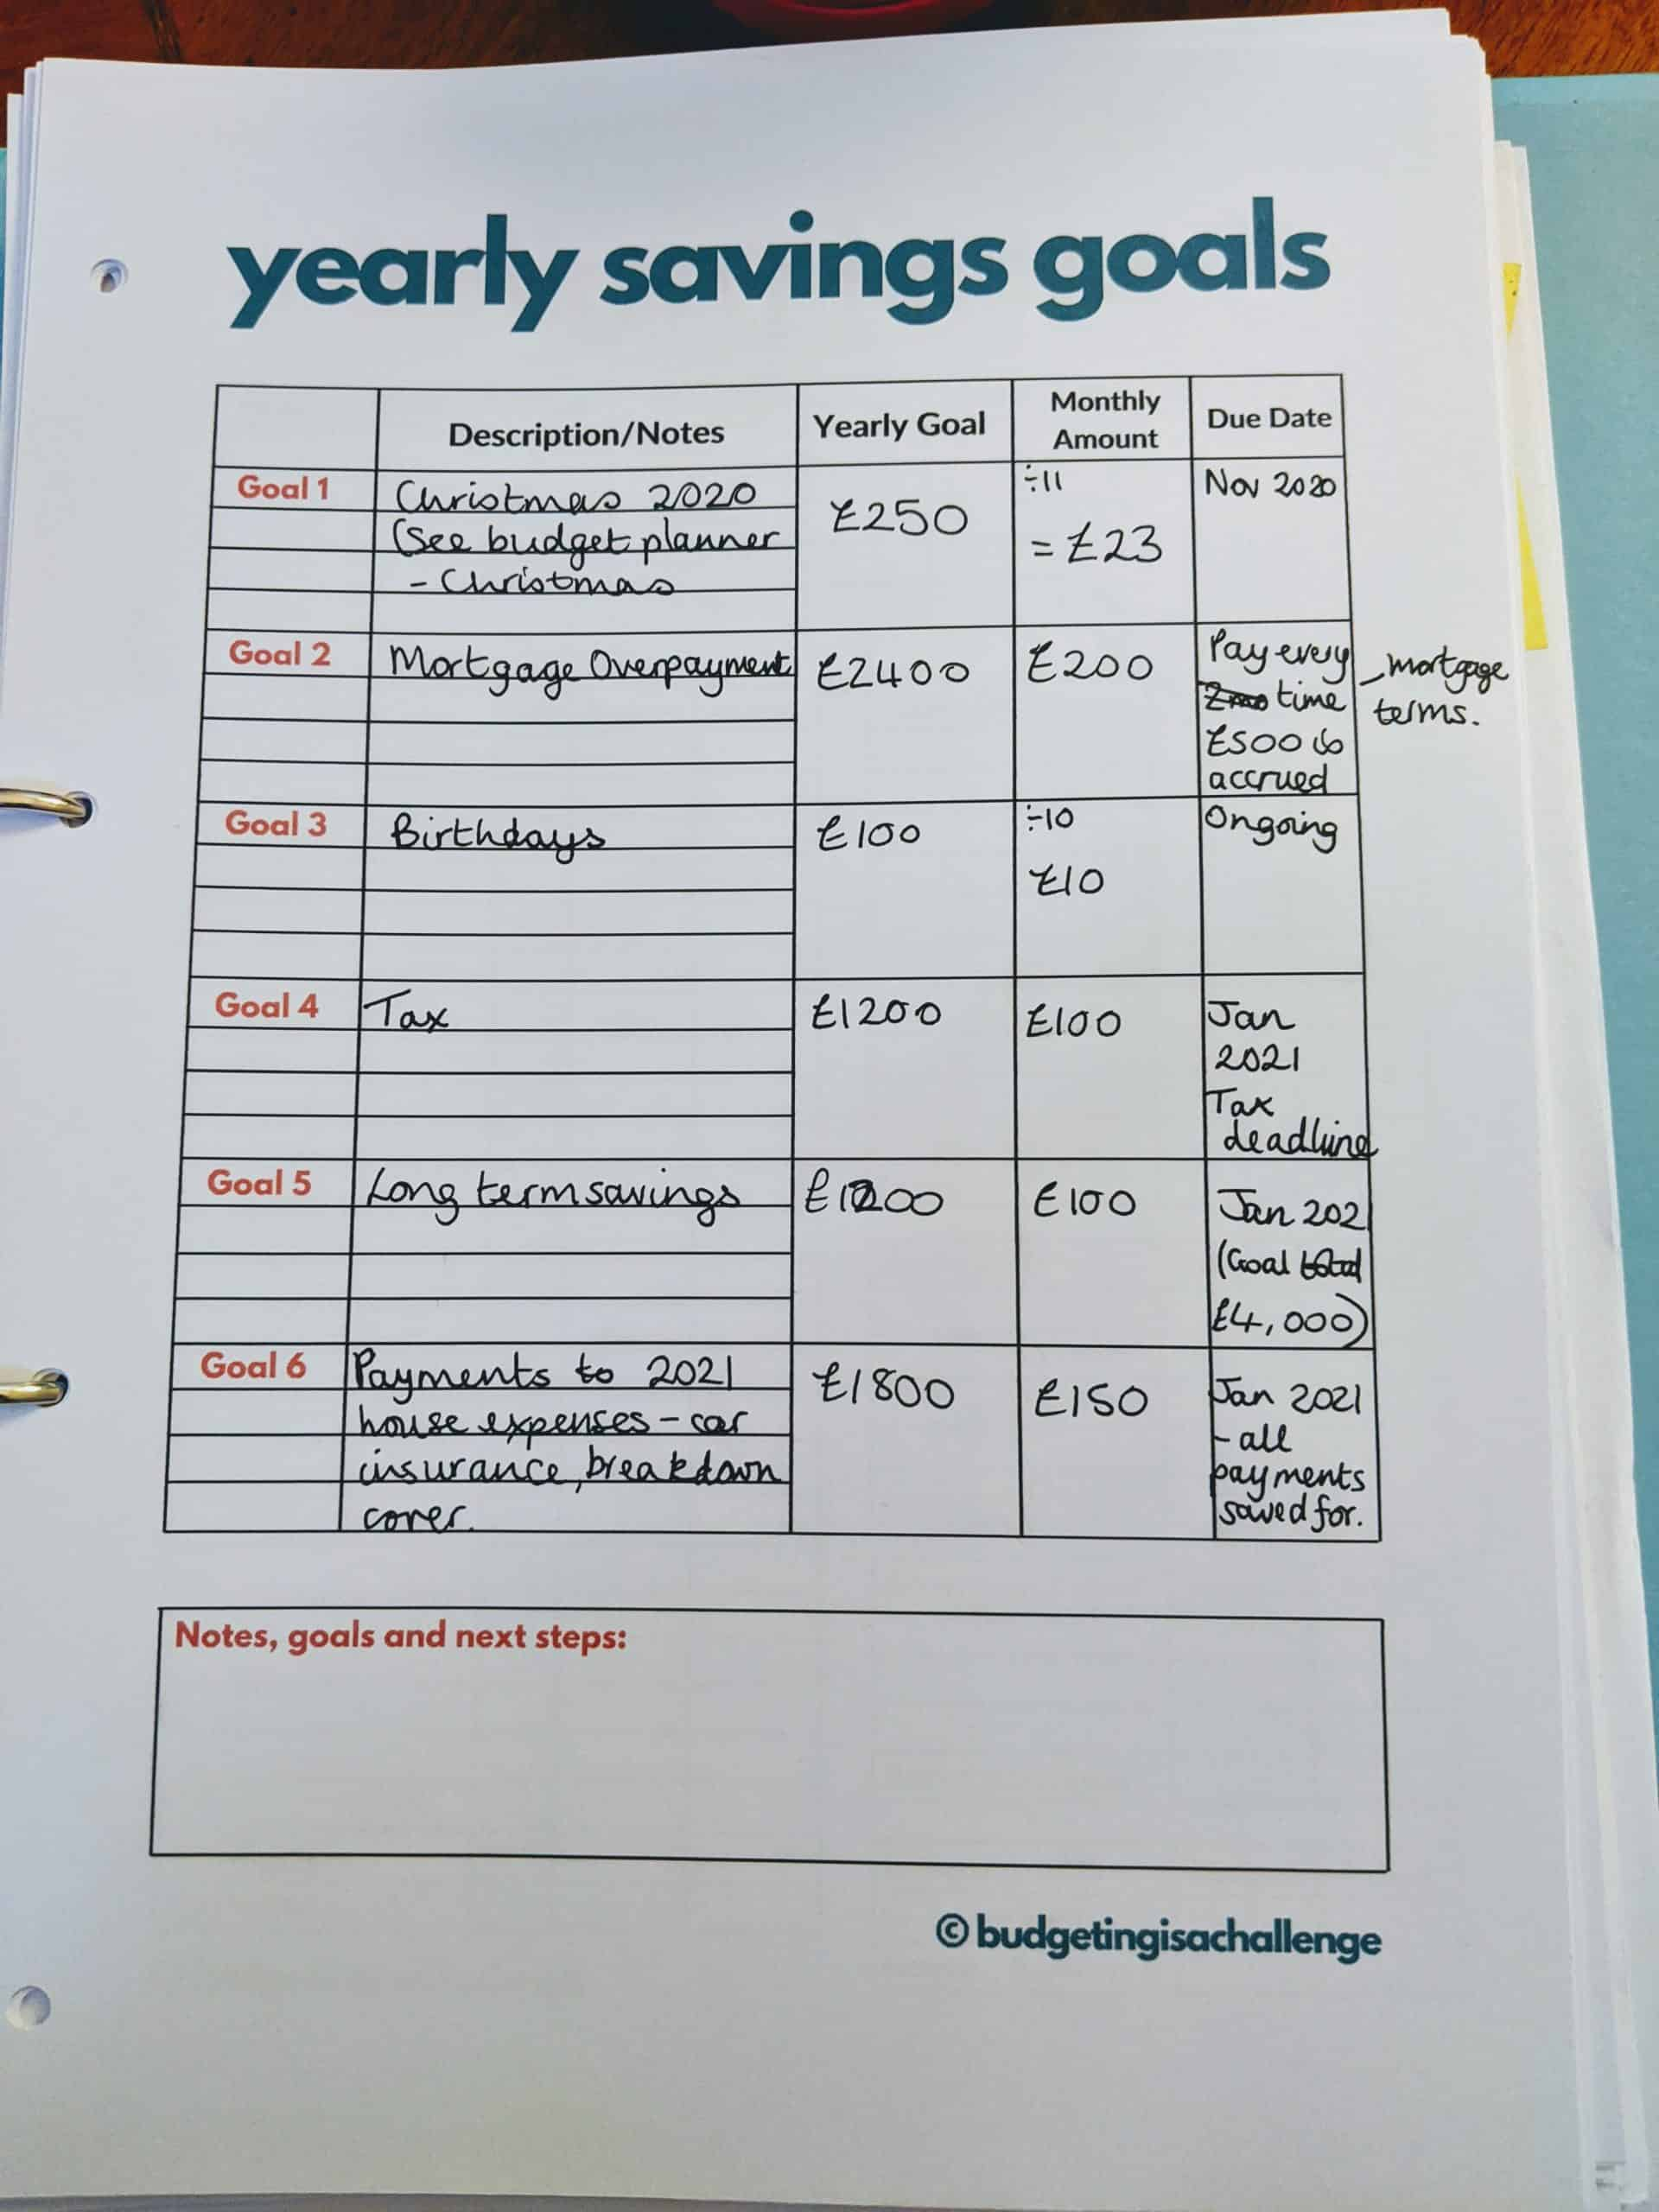 Organise your sinking funds and savings goals with a yearly savings planner sheet #sinkingfunds #savingsgoals #savemoney #budgeting #sinkfunds